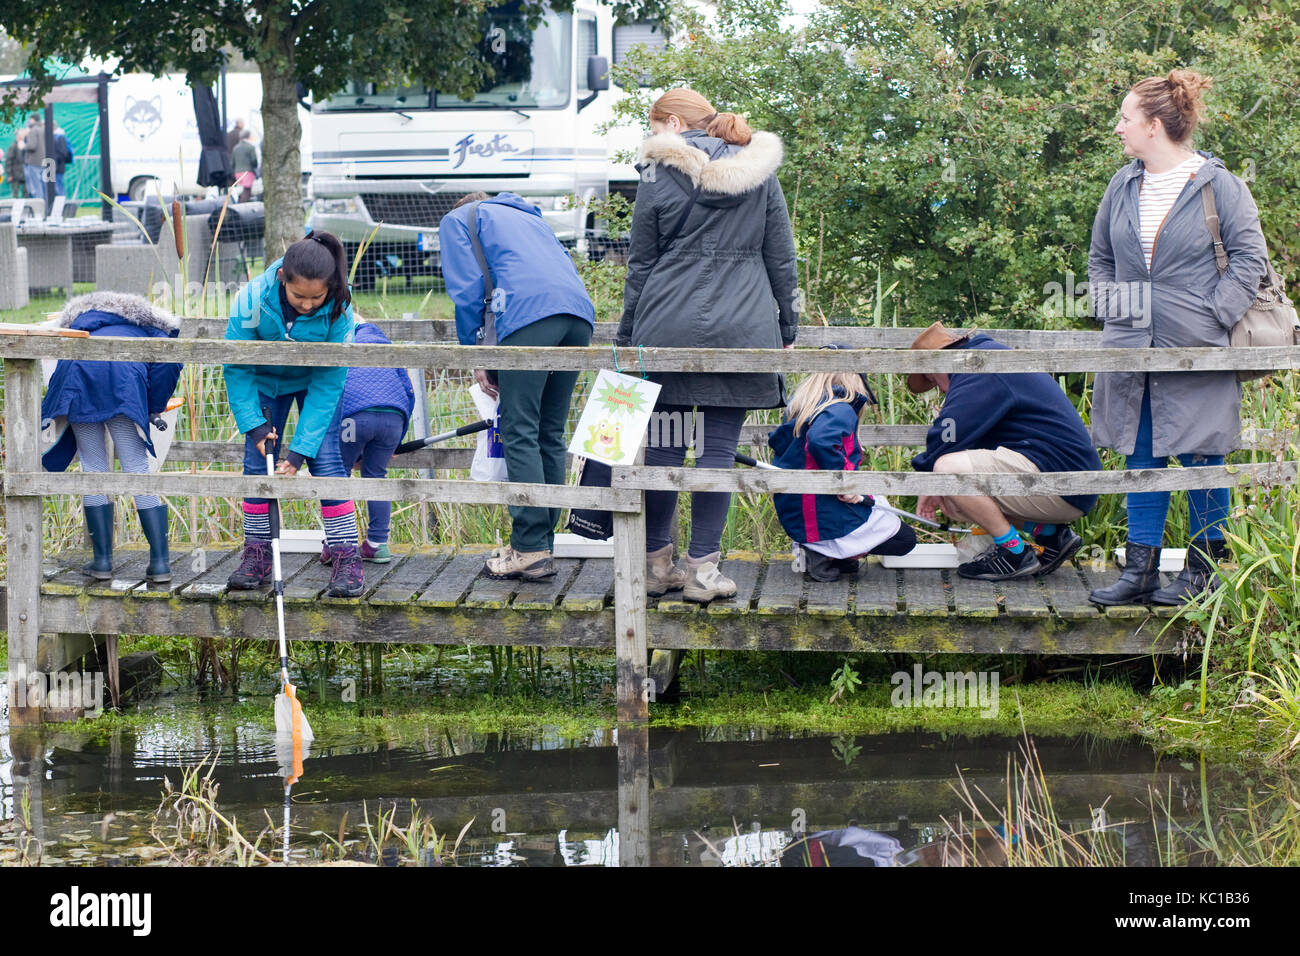 children catching frogspawn with nets in a pond - Stock Image